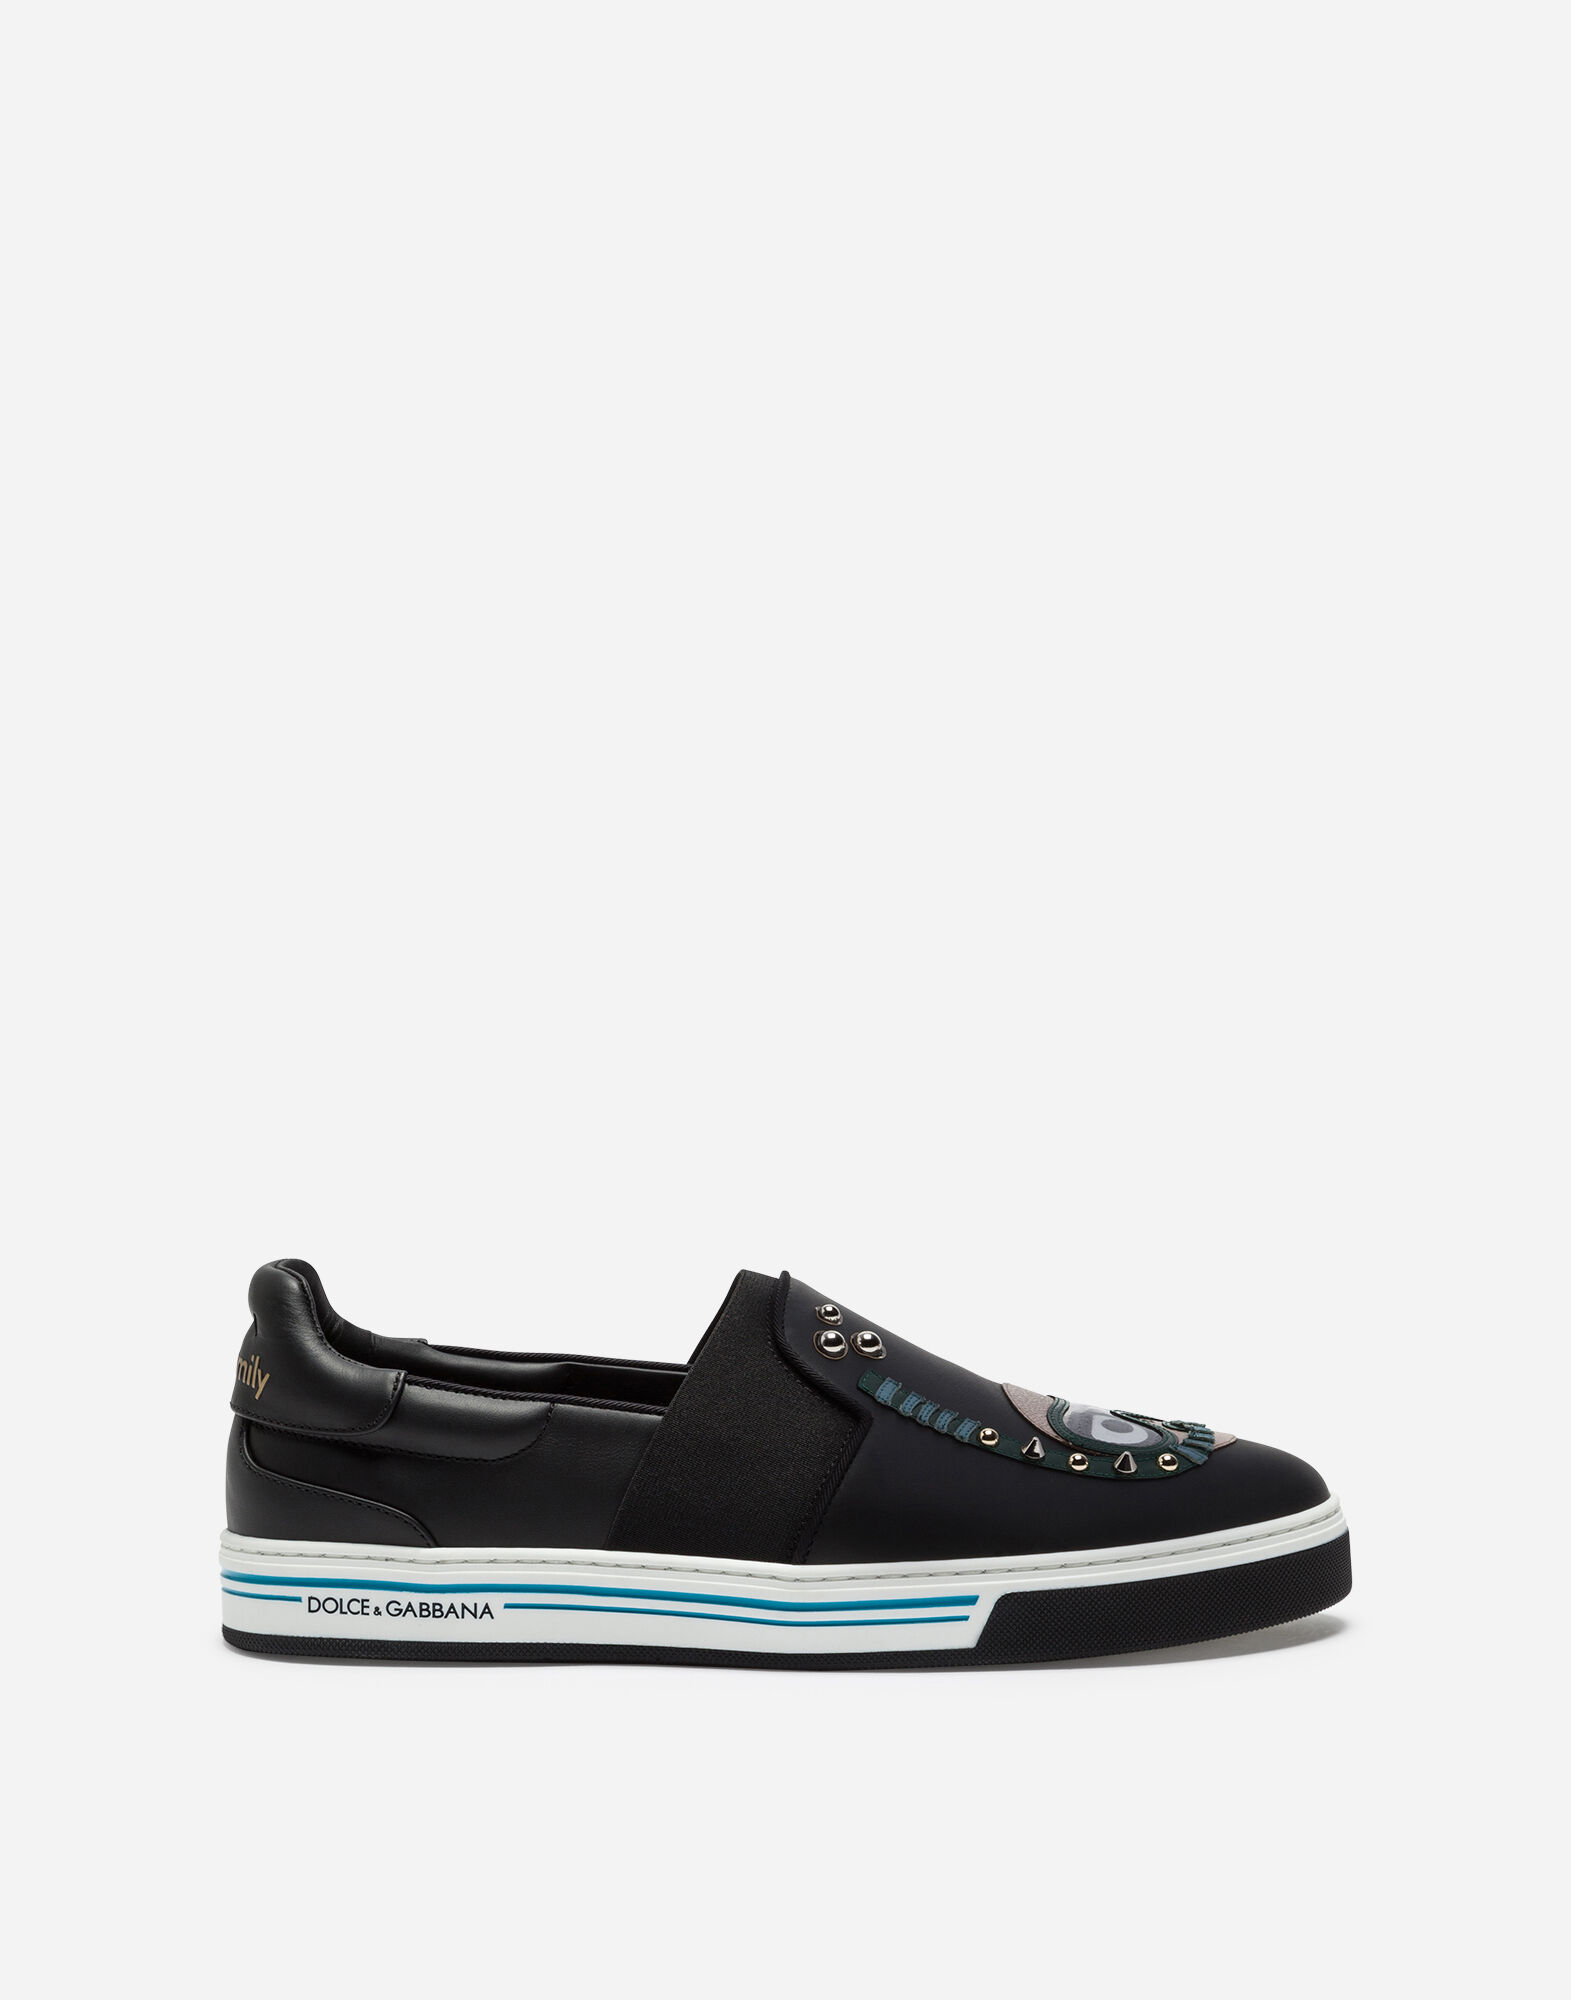 CALFSKIN NAPPA ROMA SLIP-ON SNEAKERS WITH DIVER-STYLE PATCHES OF THE DESIGNERS from DOLCE & GABBANA